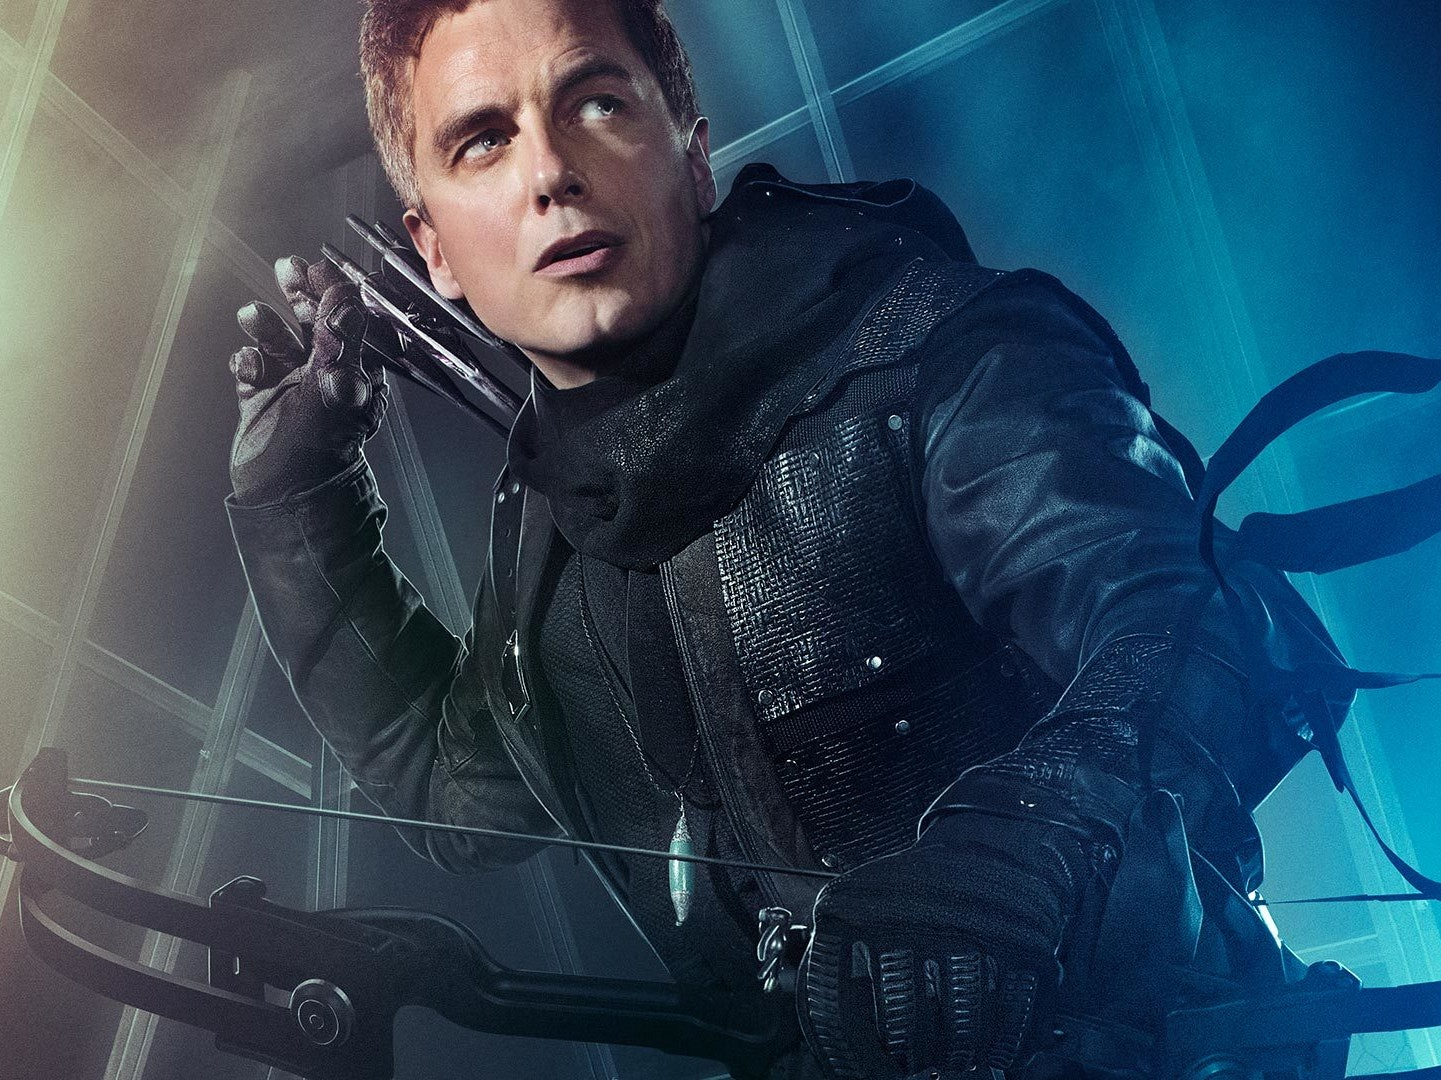 John Barrowman as Malcolm Merlyn in 'The Dark Archer'